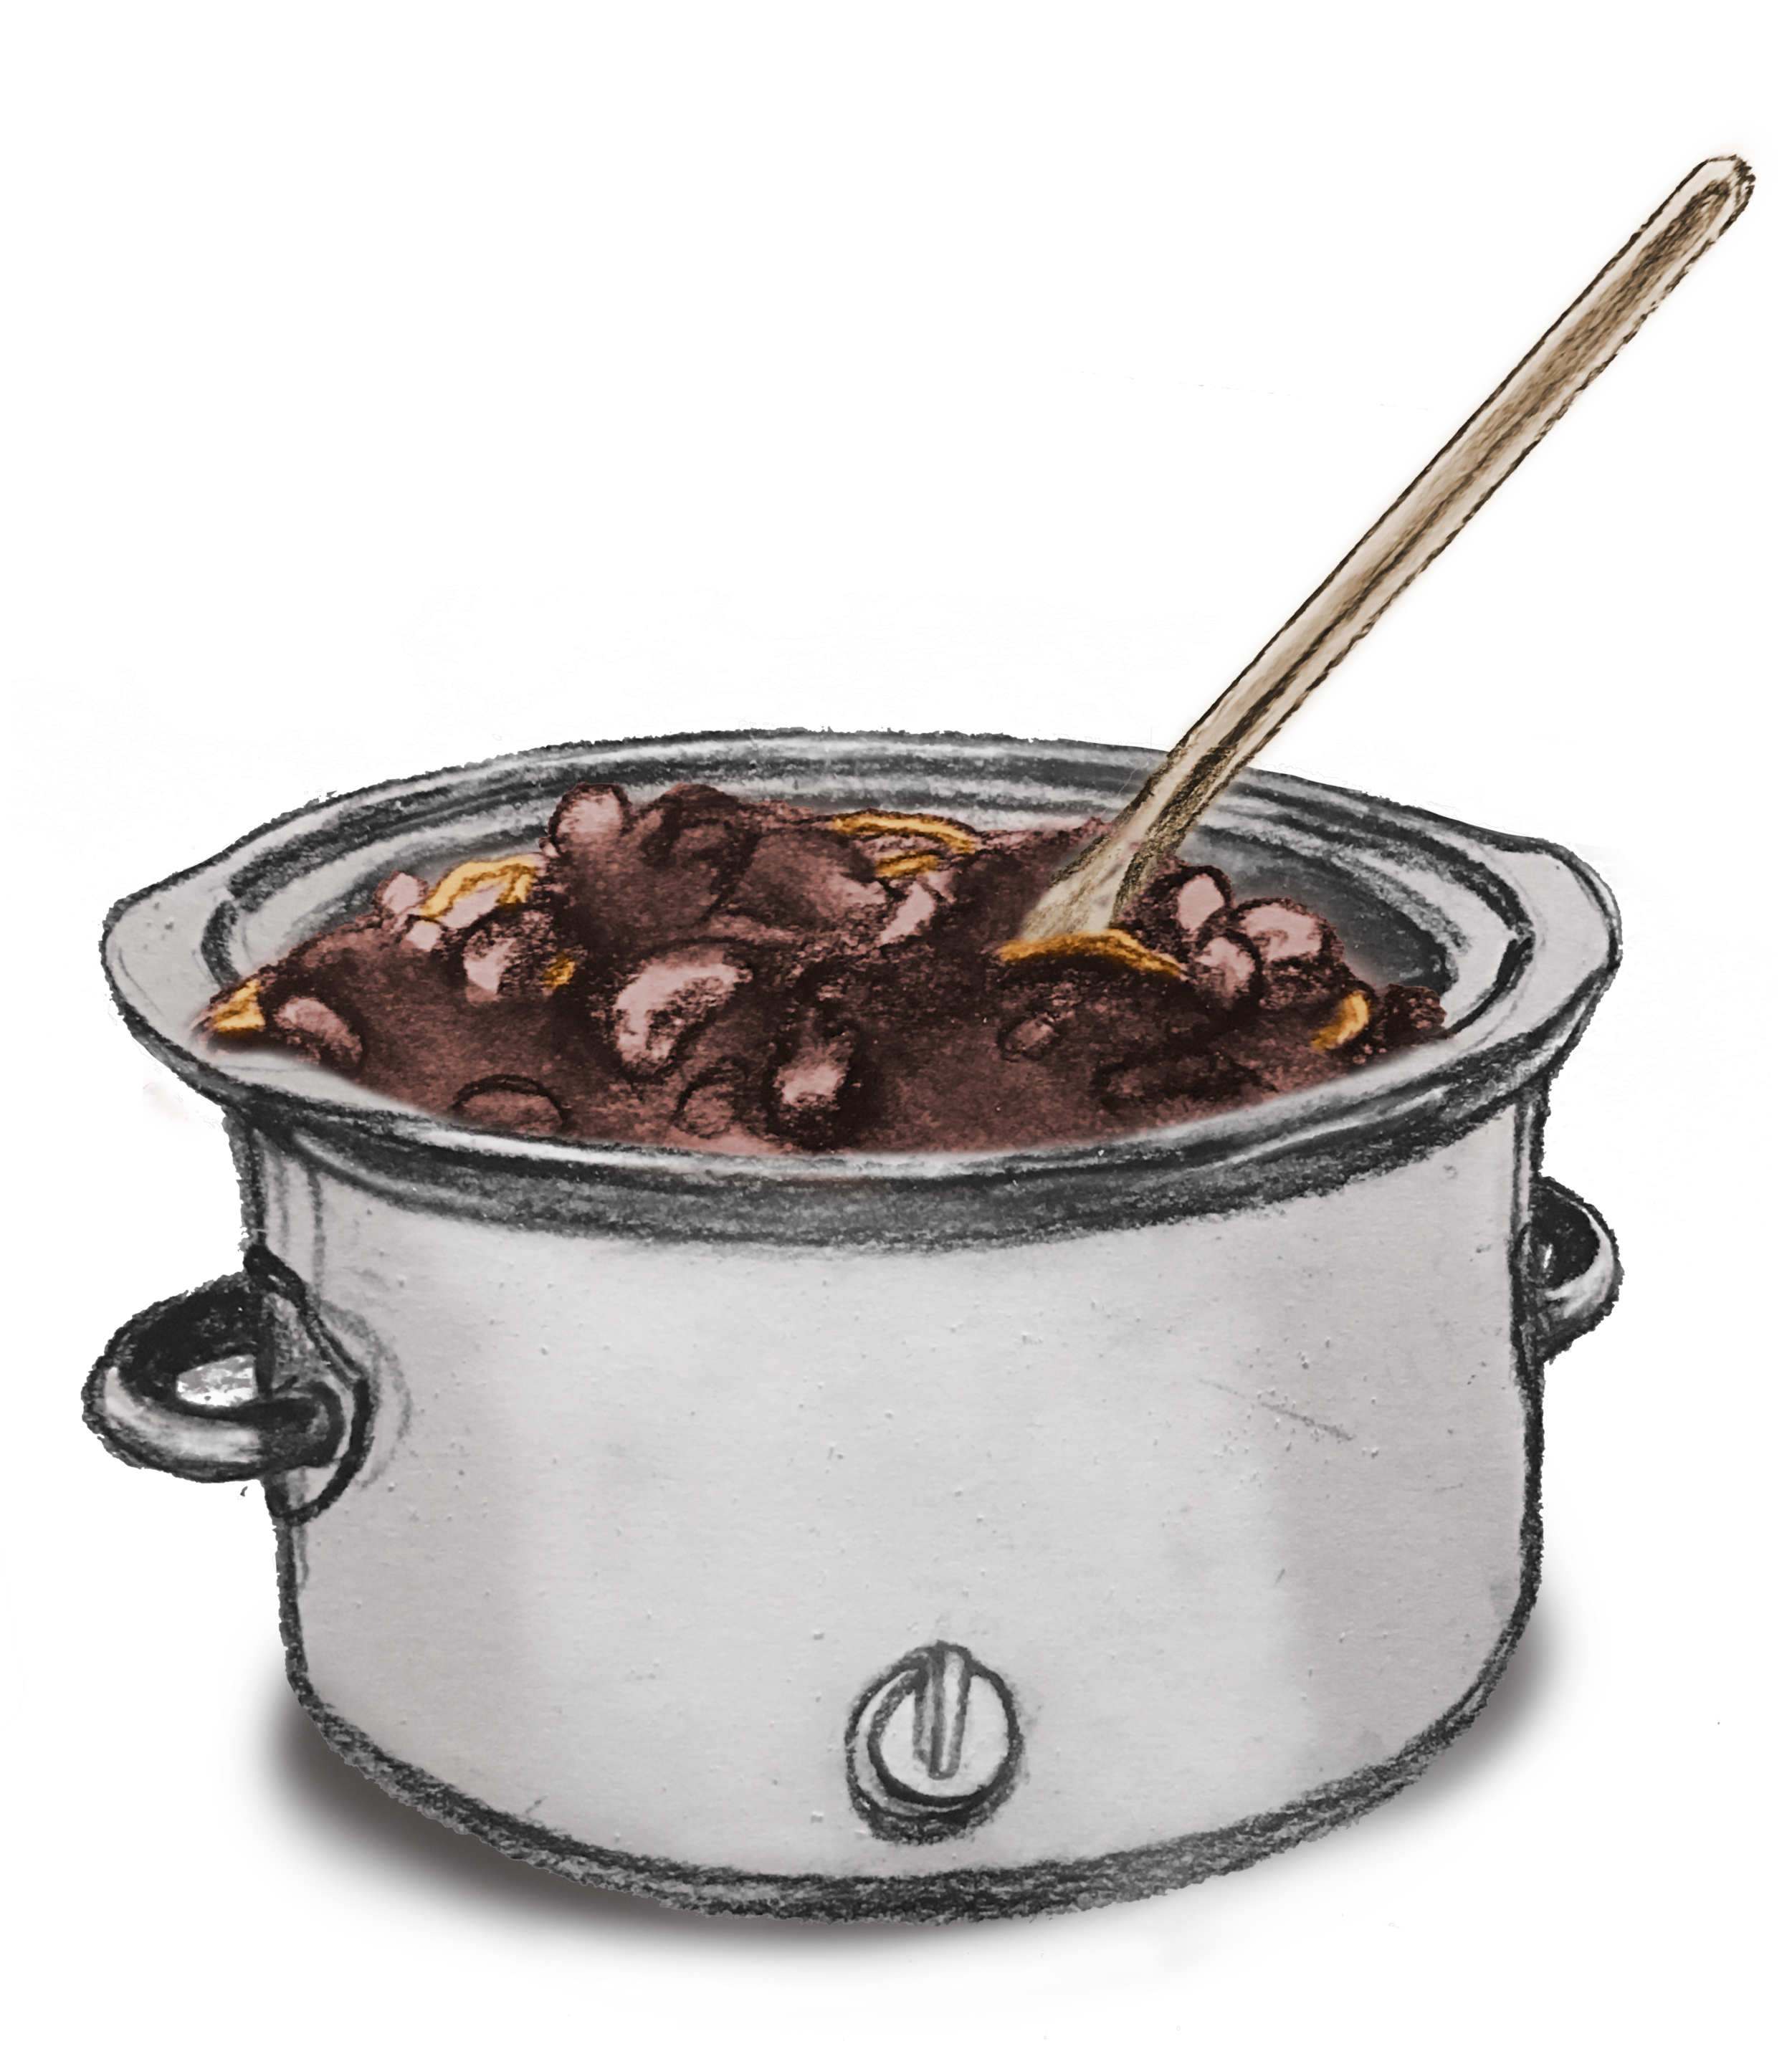 chili pot.png